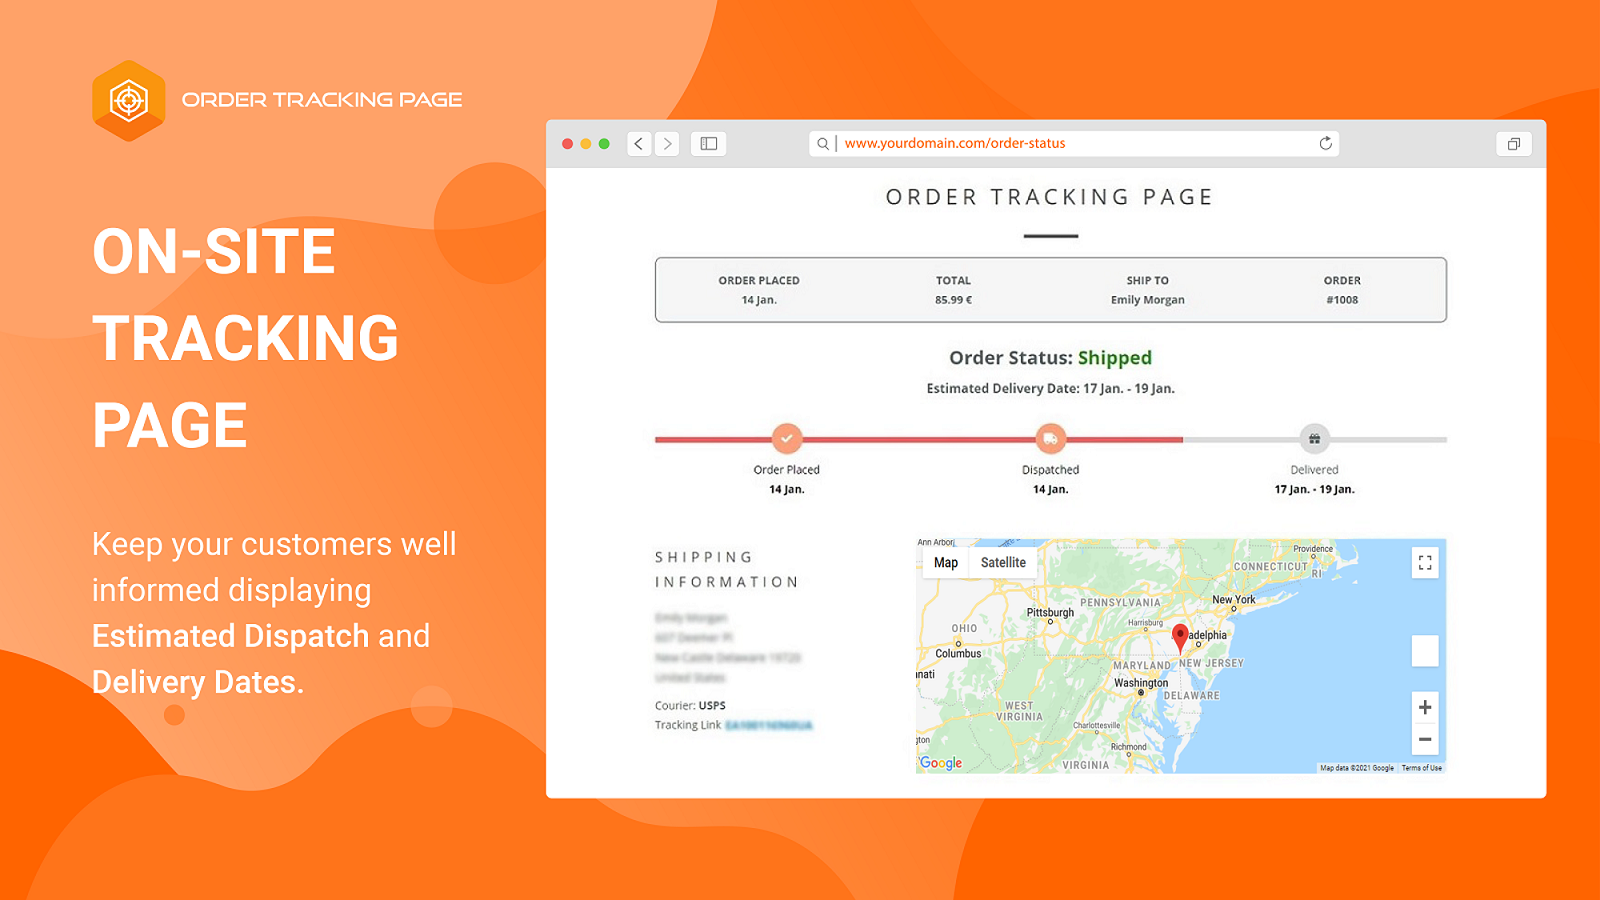 On Site Order Tracking Page